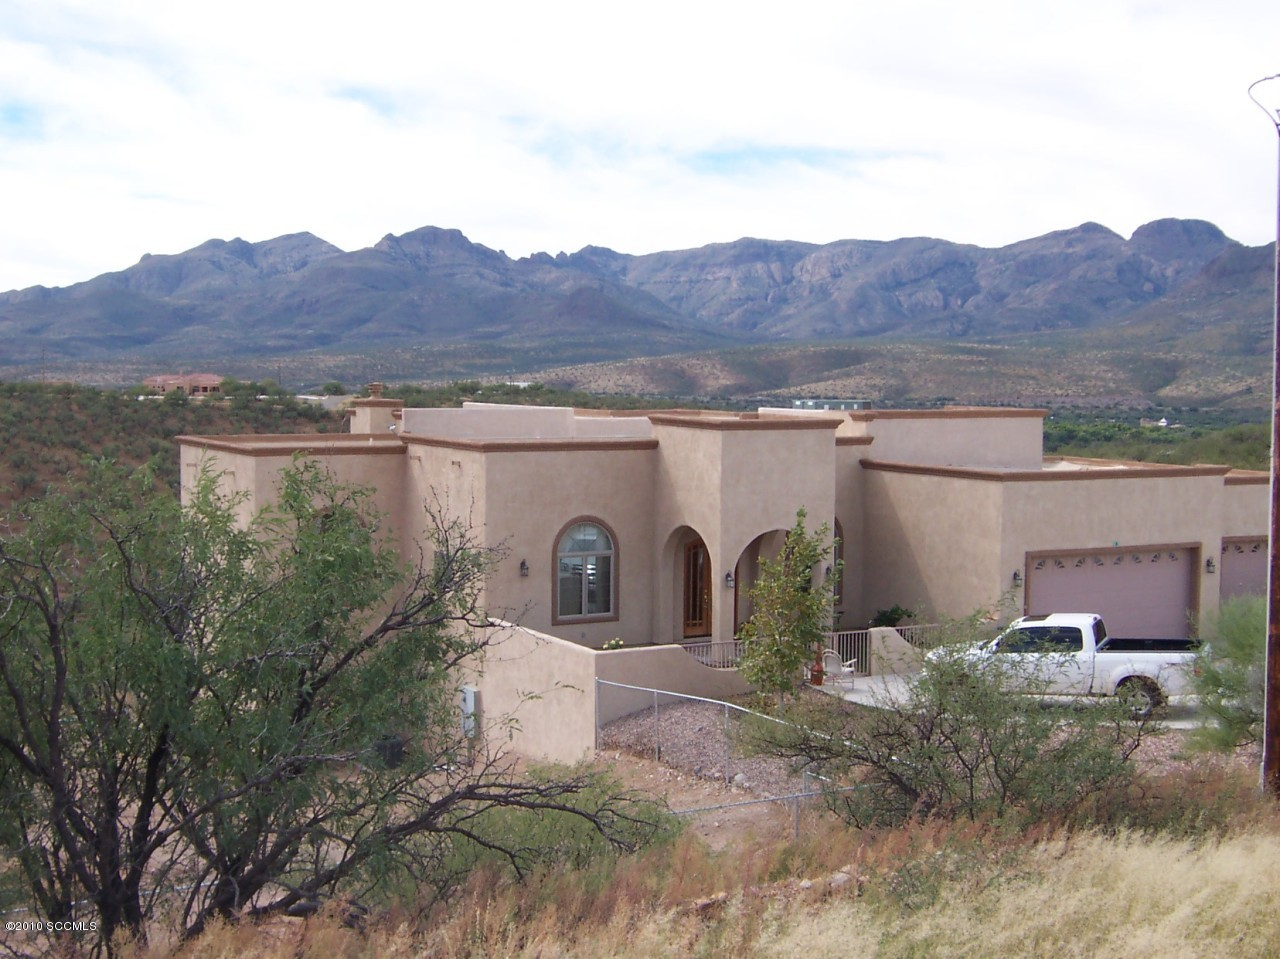 3.18 acres in Rio Rico, Arizona